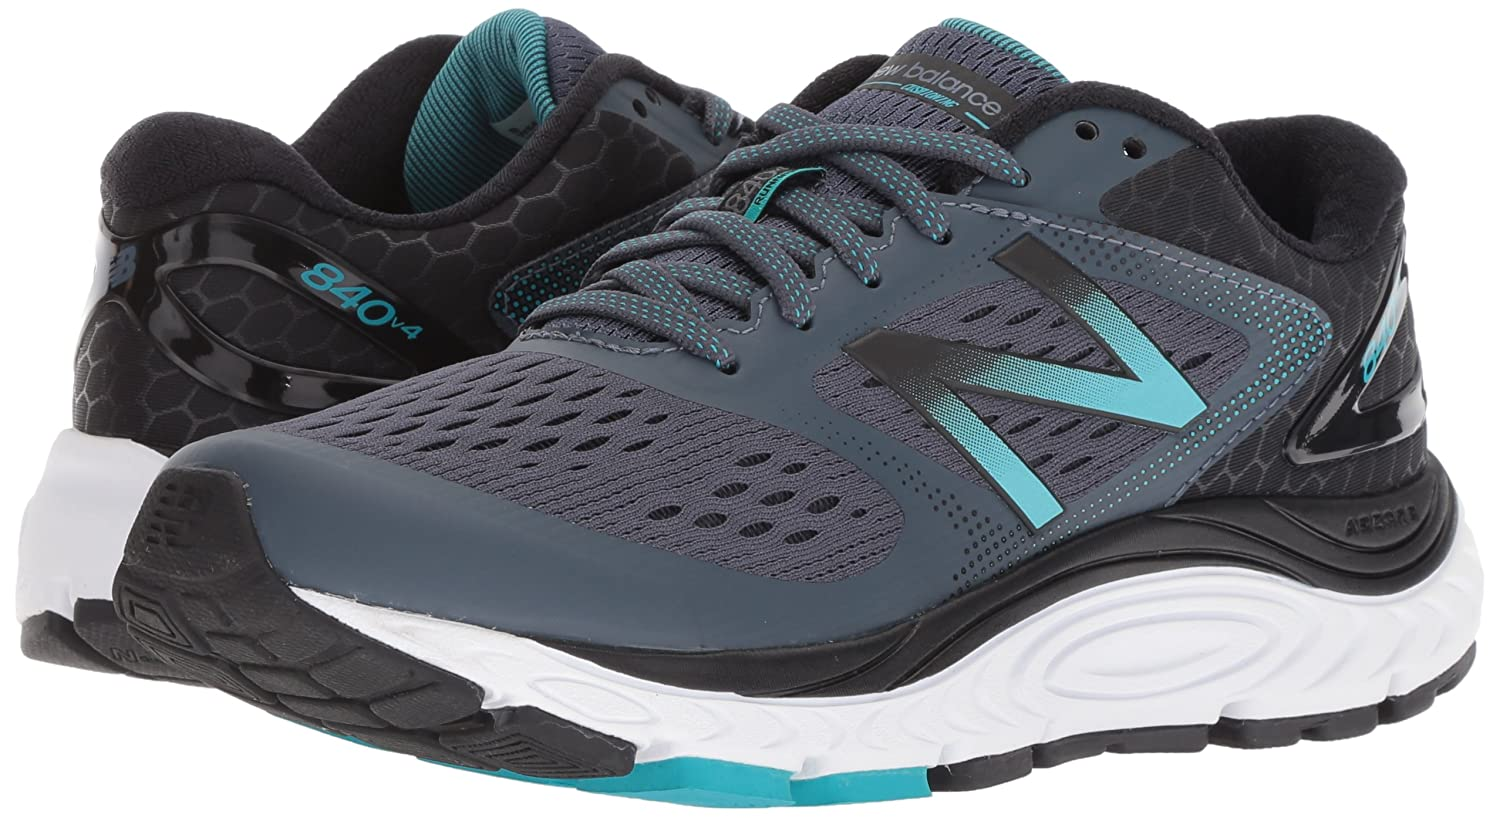 New Balance Women's 840v4 Running US|Dark Shoe B01NGUAFE0 11 2E US|Dark Running Grey 0ca959